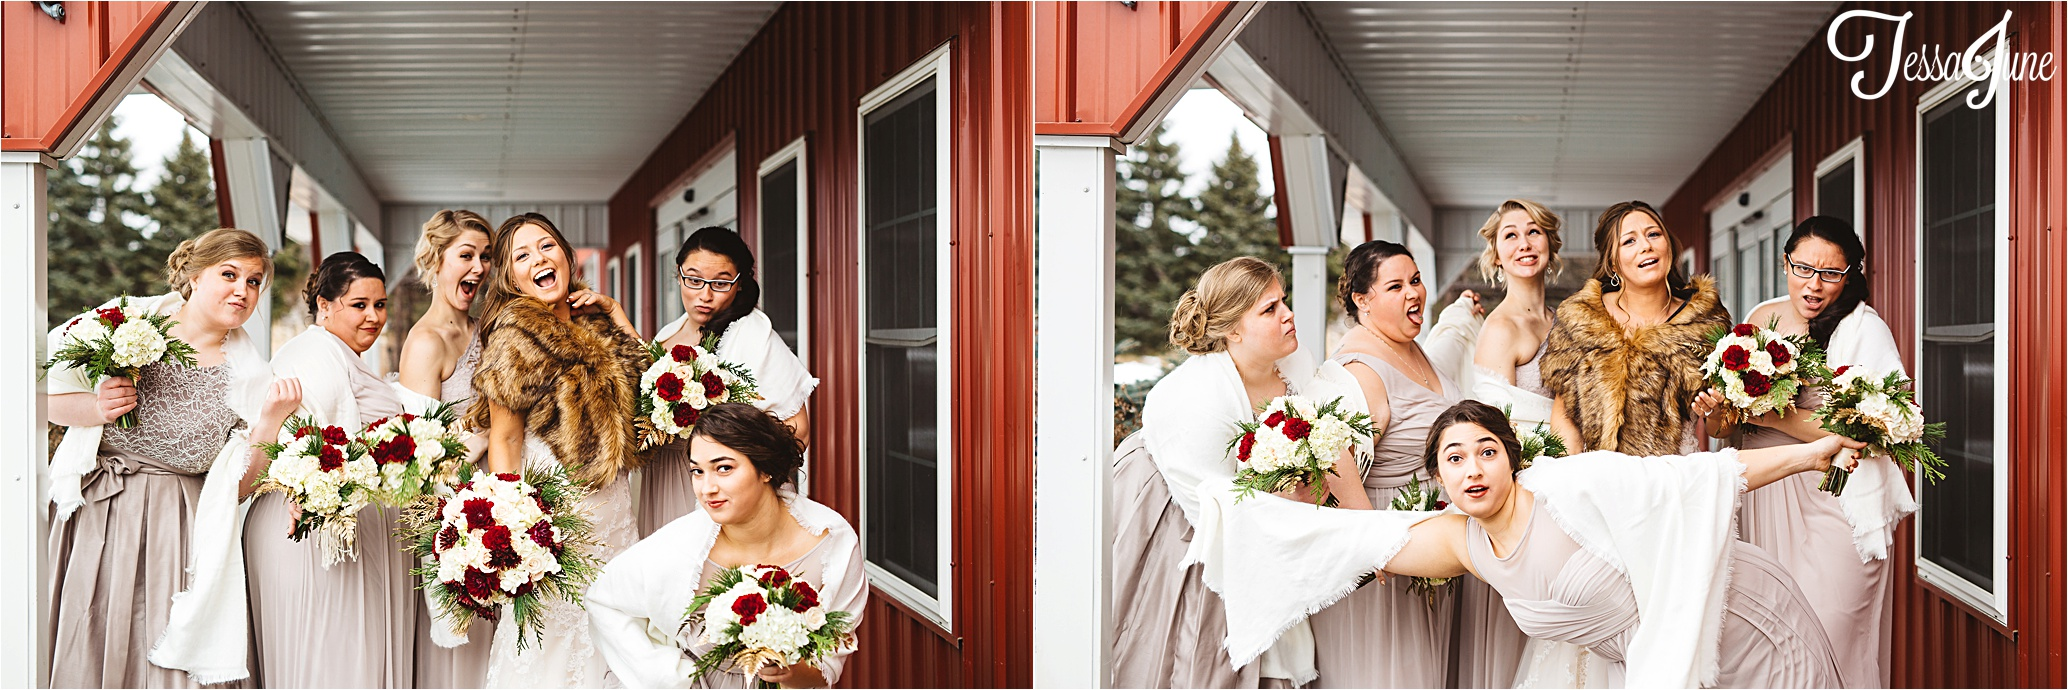 st-cloud-minnesota-wedding-photographer-the-outpost-center-chaska-snow-winter-romantic-bridesmaid